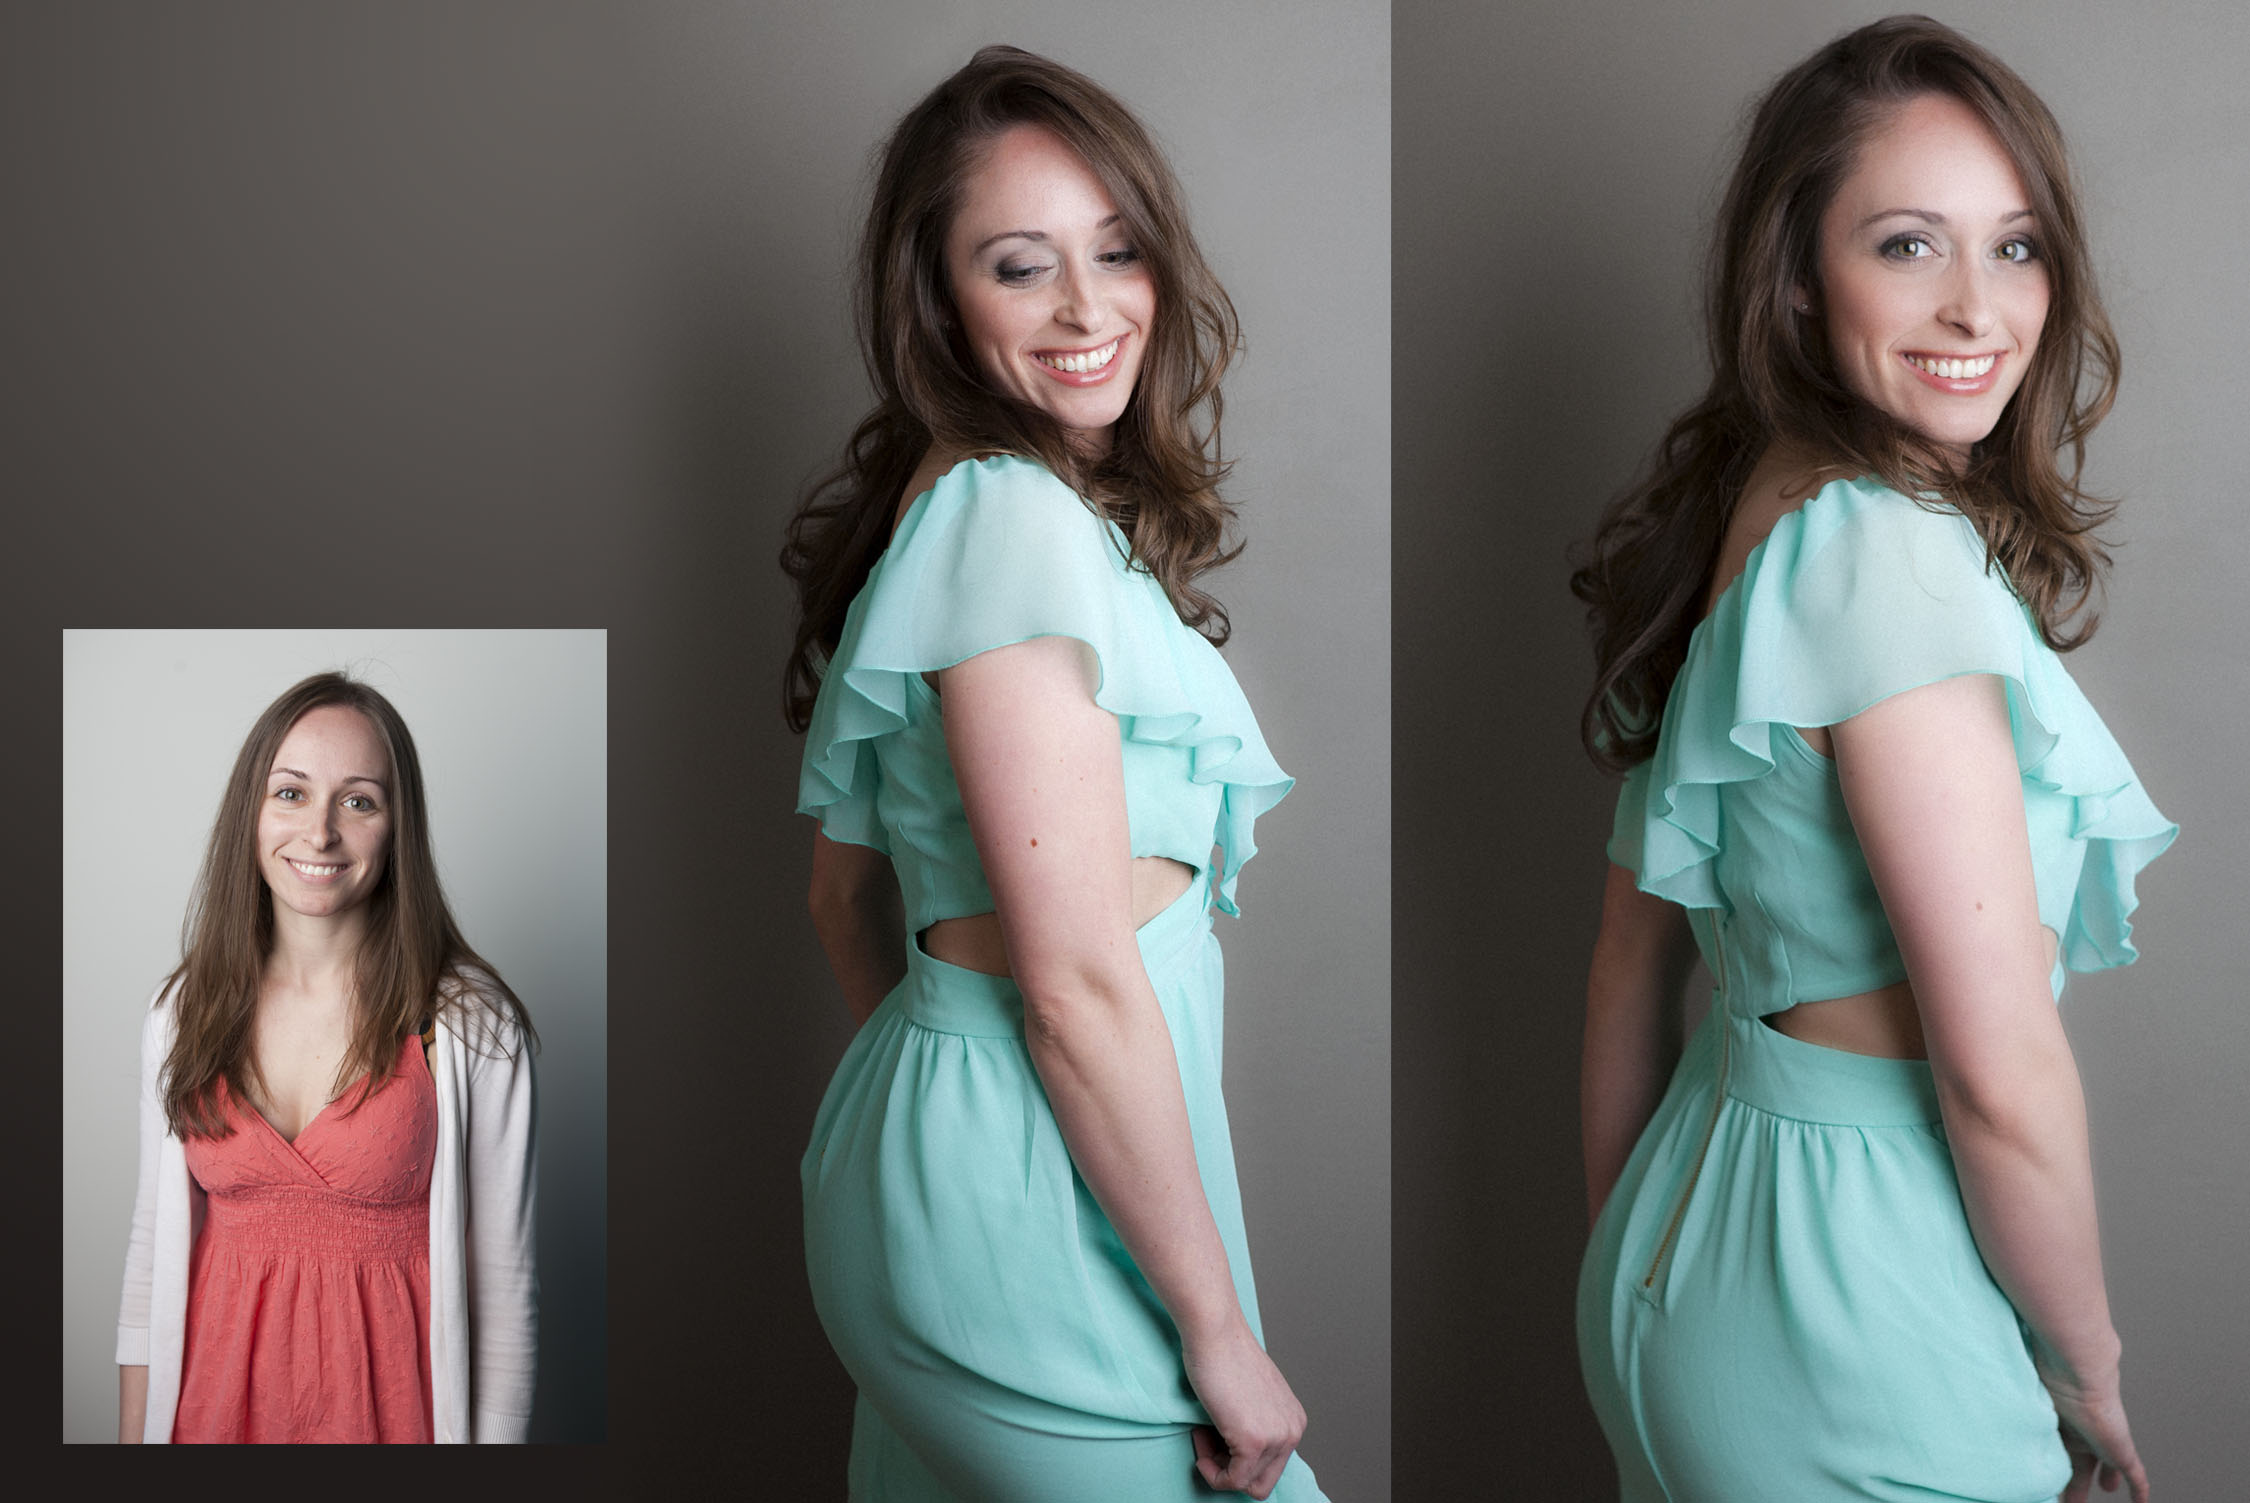 photos of before and after for a glamour session by boston glamour photographer Alice Pepplow, The Imagery Studio